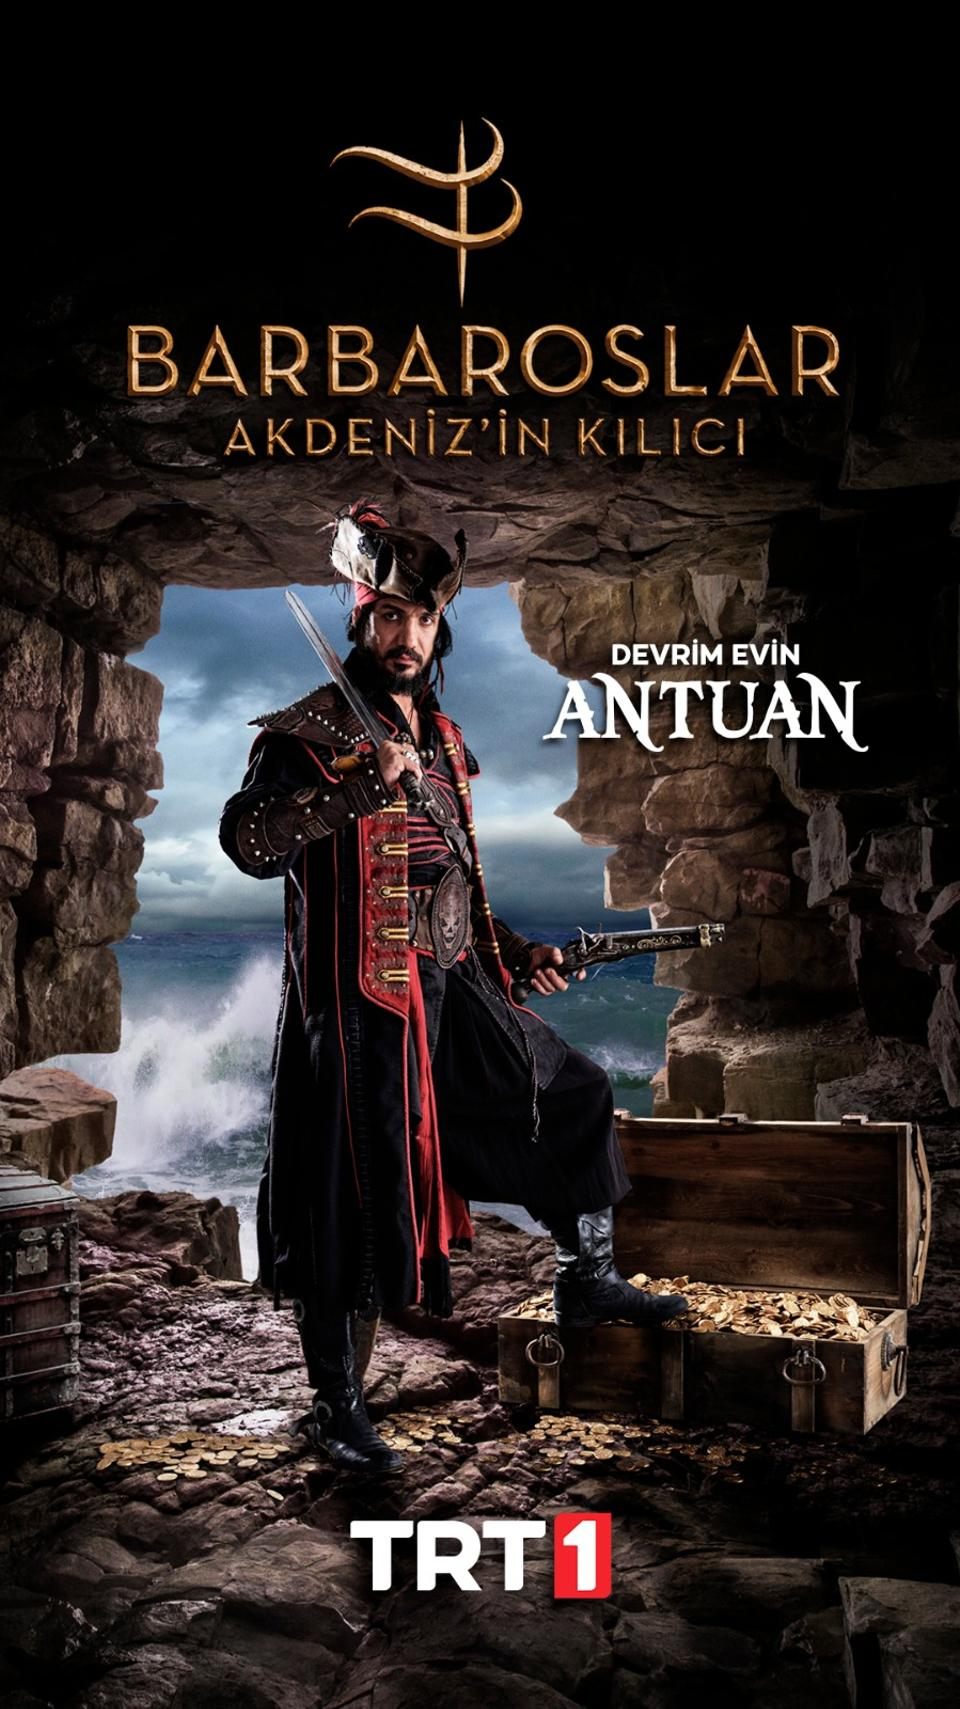 Every story needs a villain: Antuan (Antoine) is brought to life by Devrim Evin.